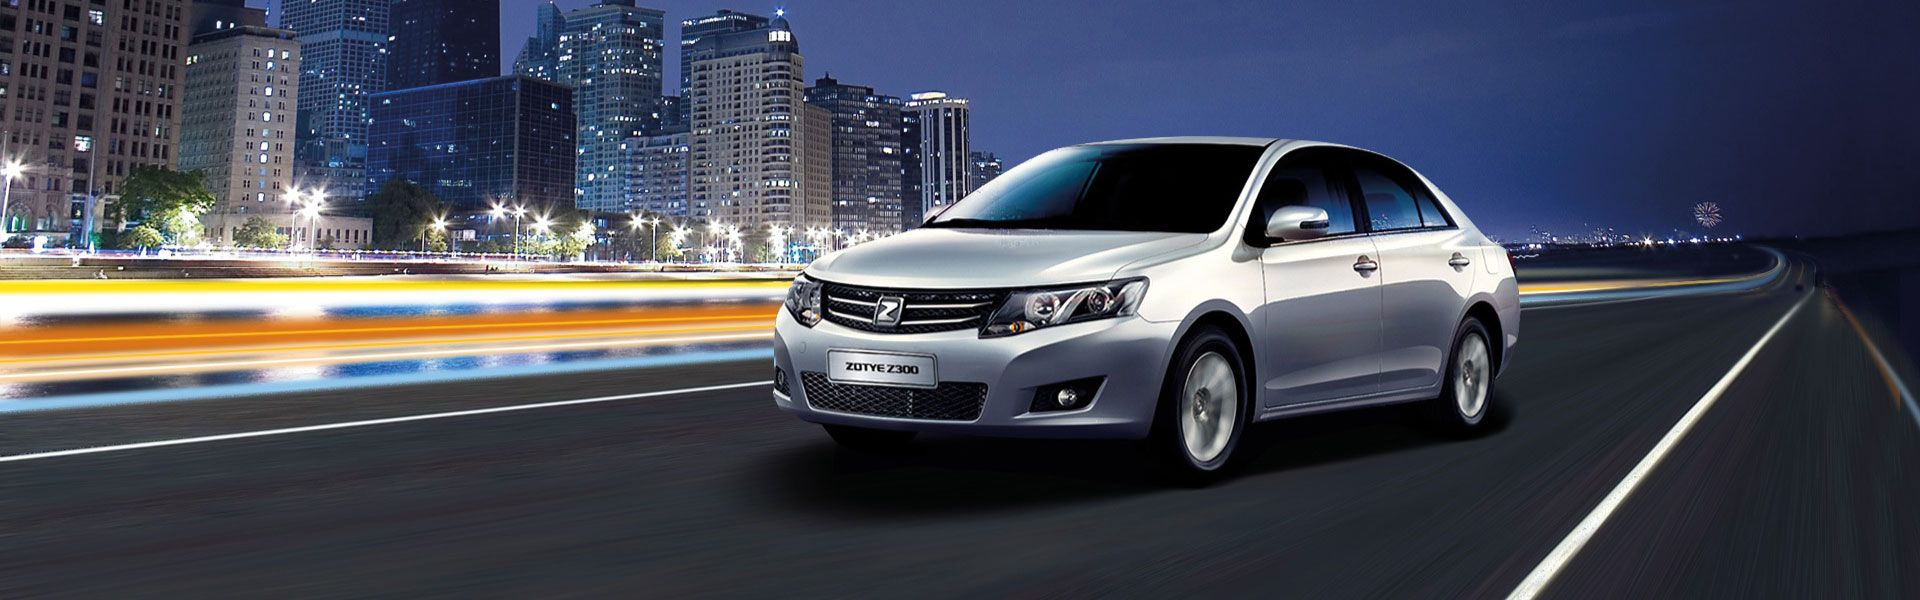 Great Wall M4 2016 Ecuador New Car Release Date And